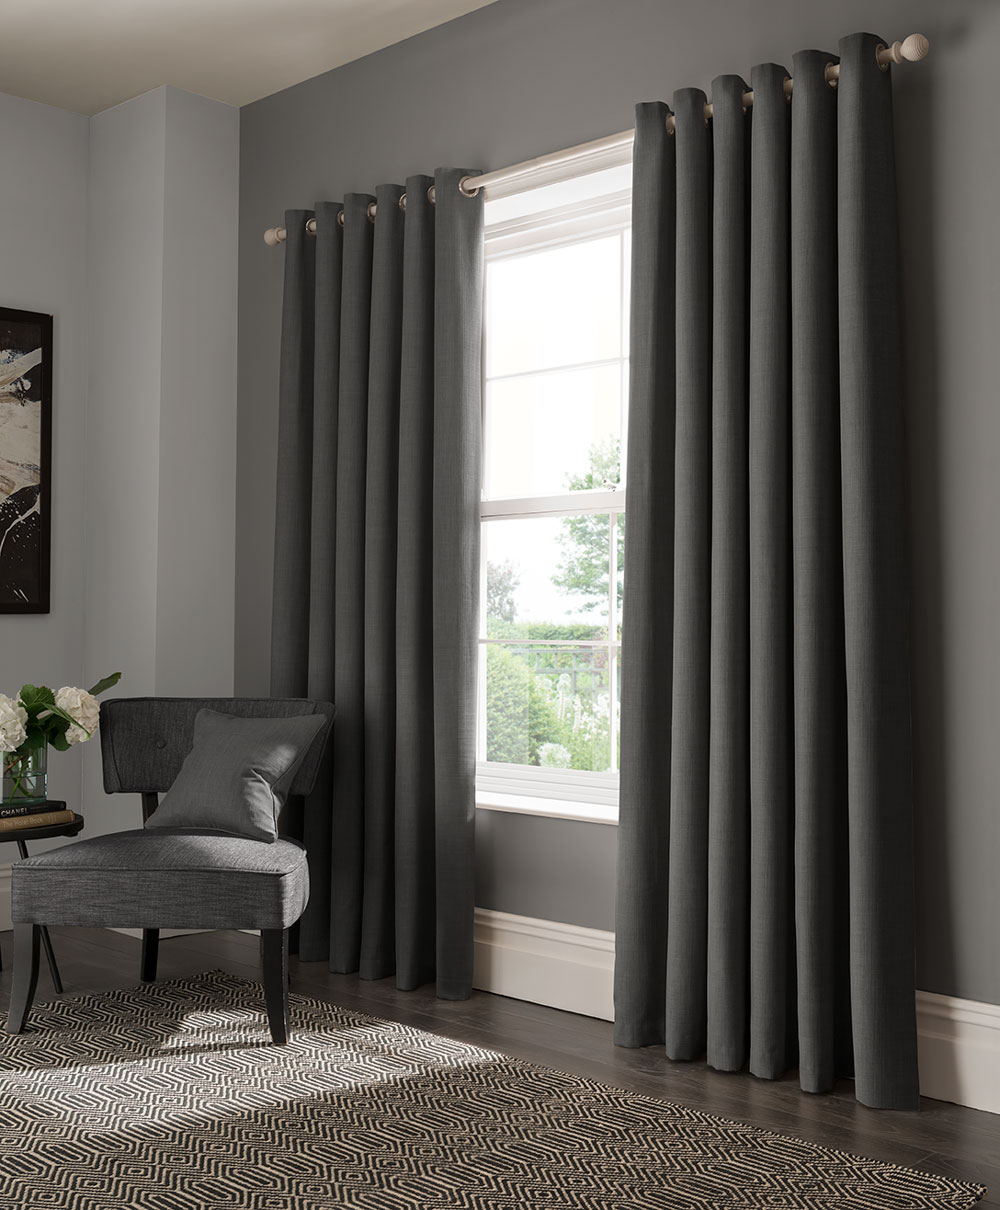 Studio G Elba Eyelet Curtains Steel Ready Made Curtains - Product code: M1104/04/66X9